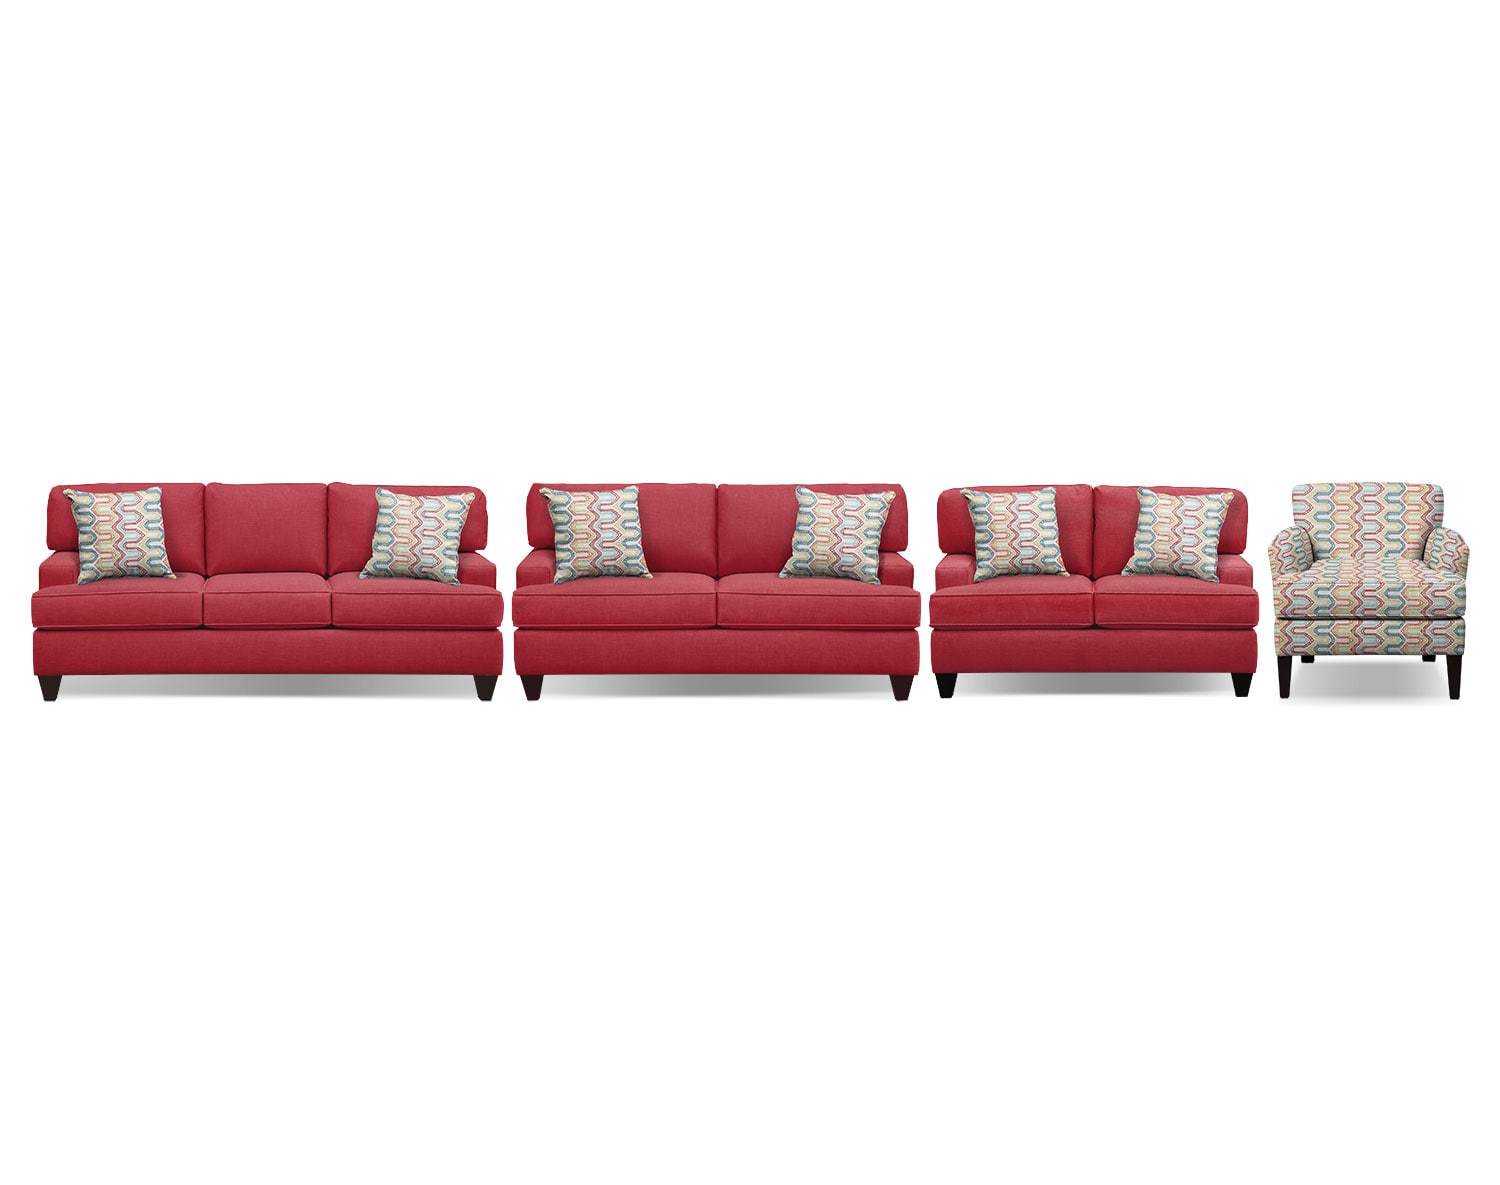 The Conner Red Living Room Collection | Value City Furniture and ...